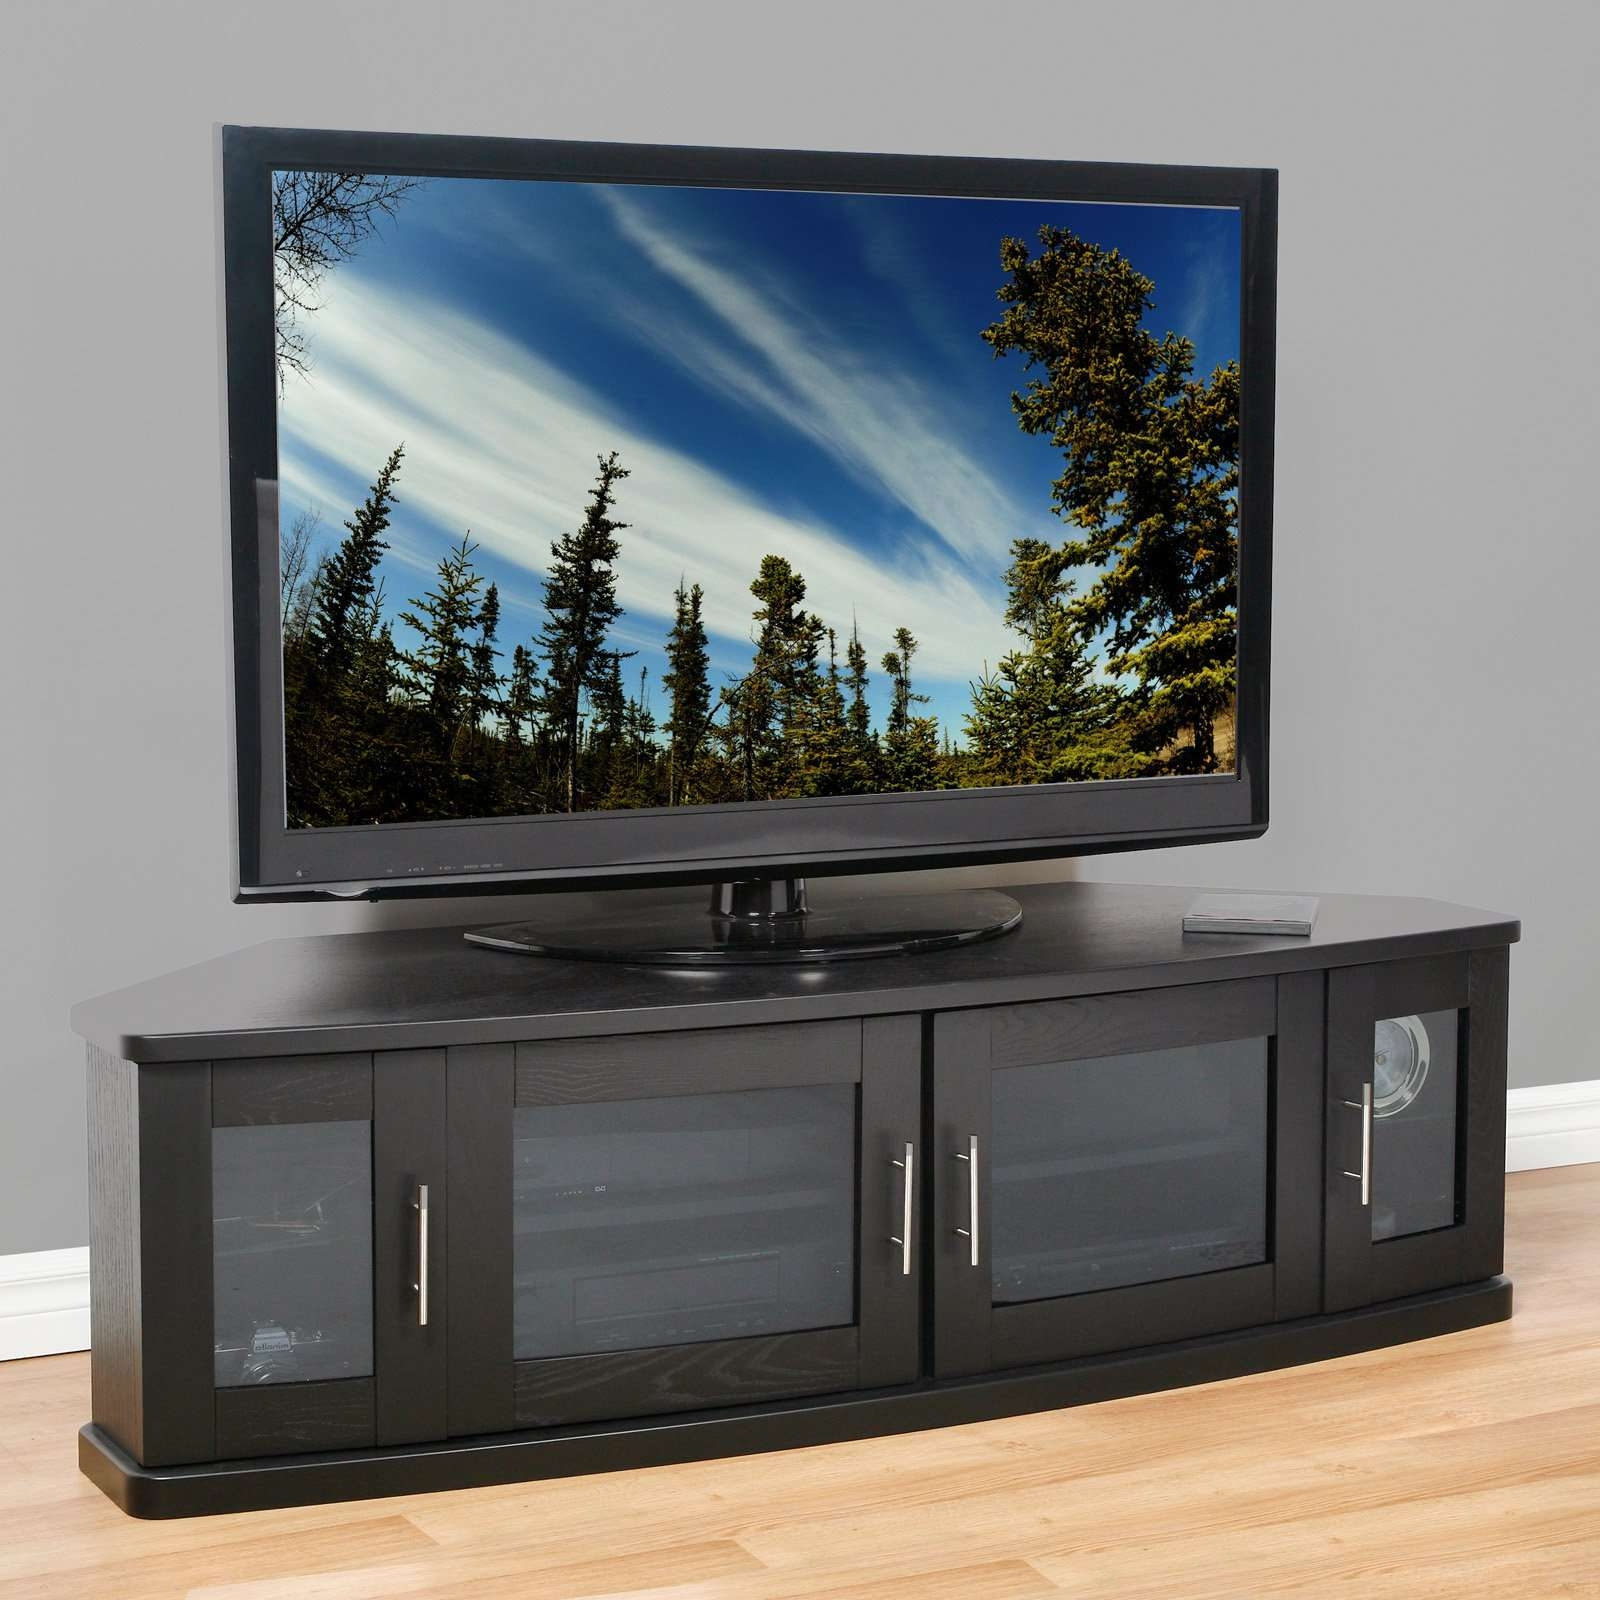 Modern Black Wooden Tv Stand With Frosted Glass Doors Of Dazzling With Regard To Black Tv Cabinets With Doors (View 10 of 20)